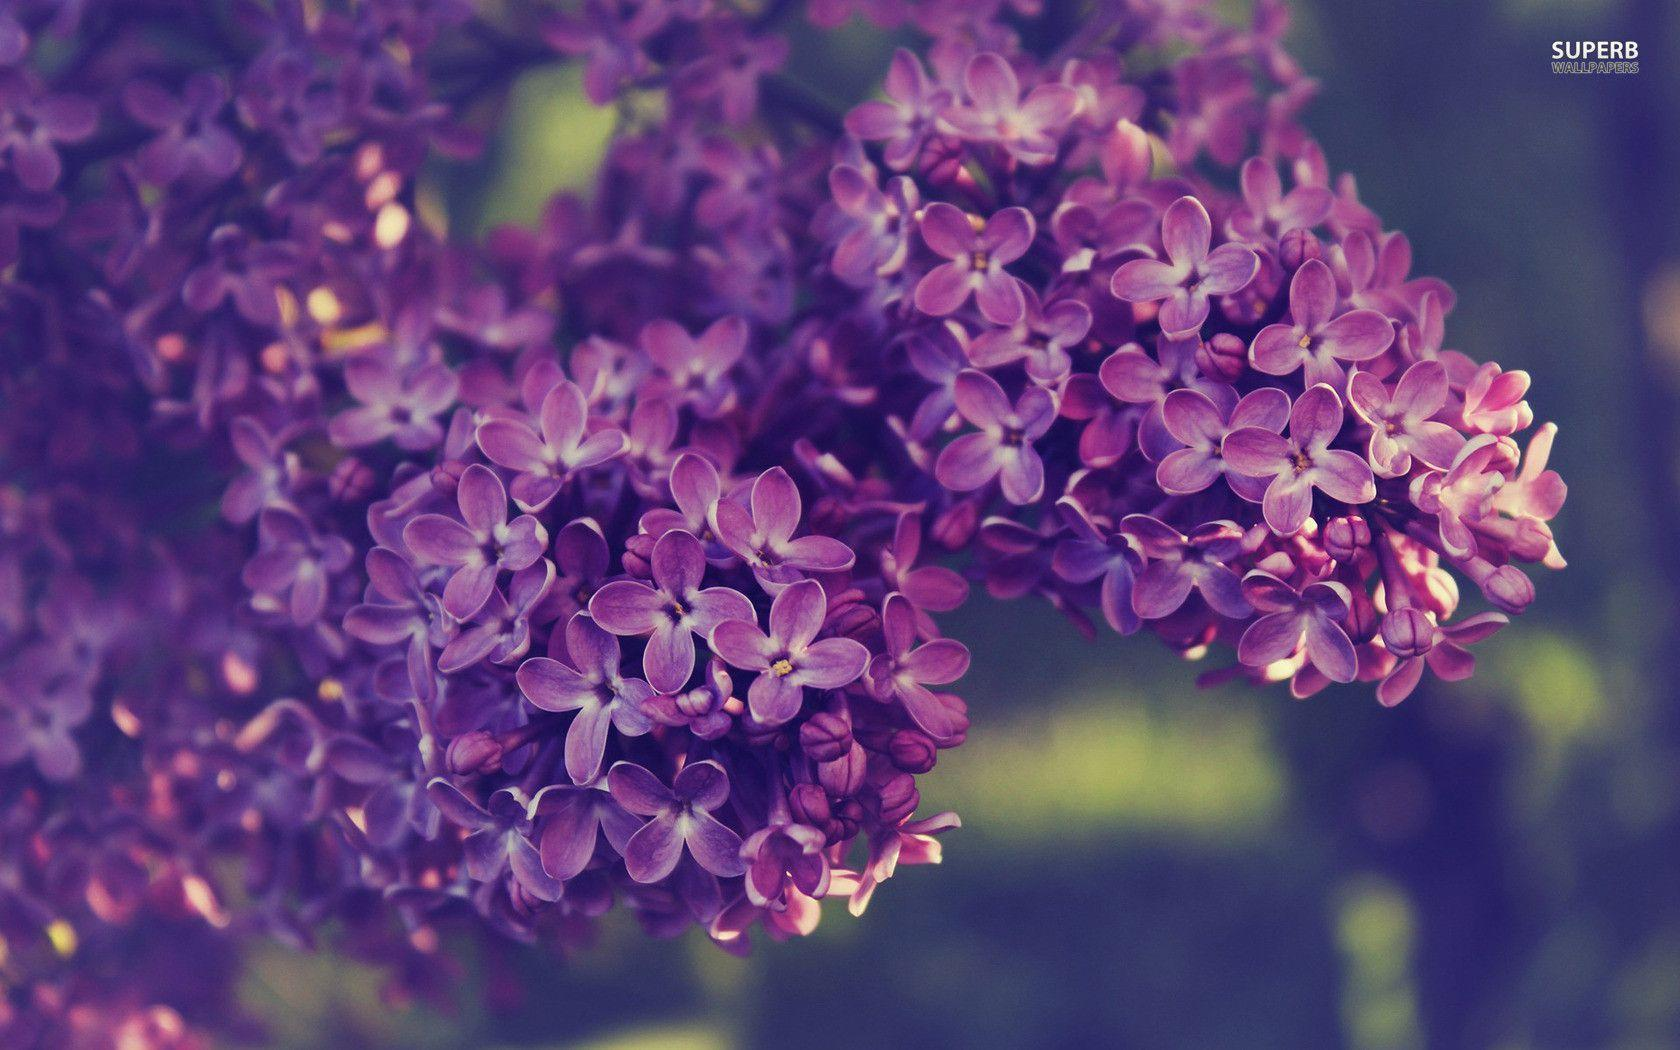 lilac flower wallpaper jpg - photo #26